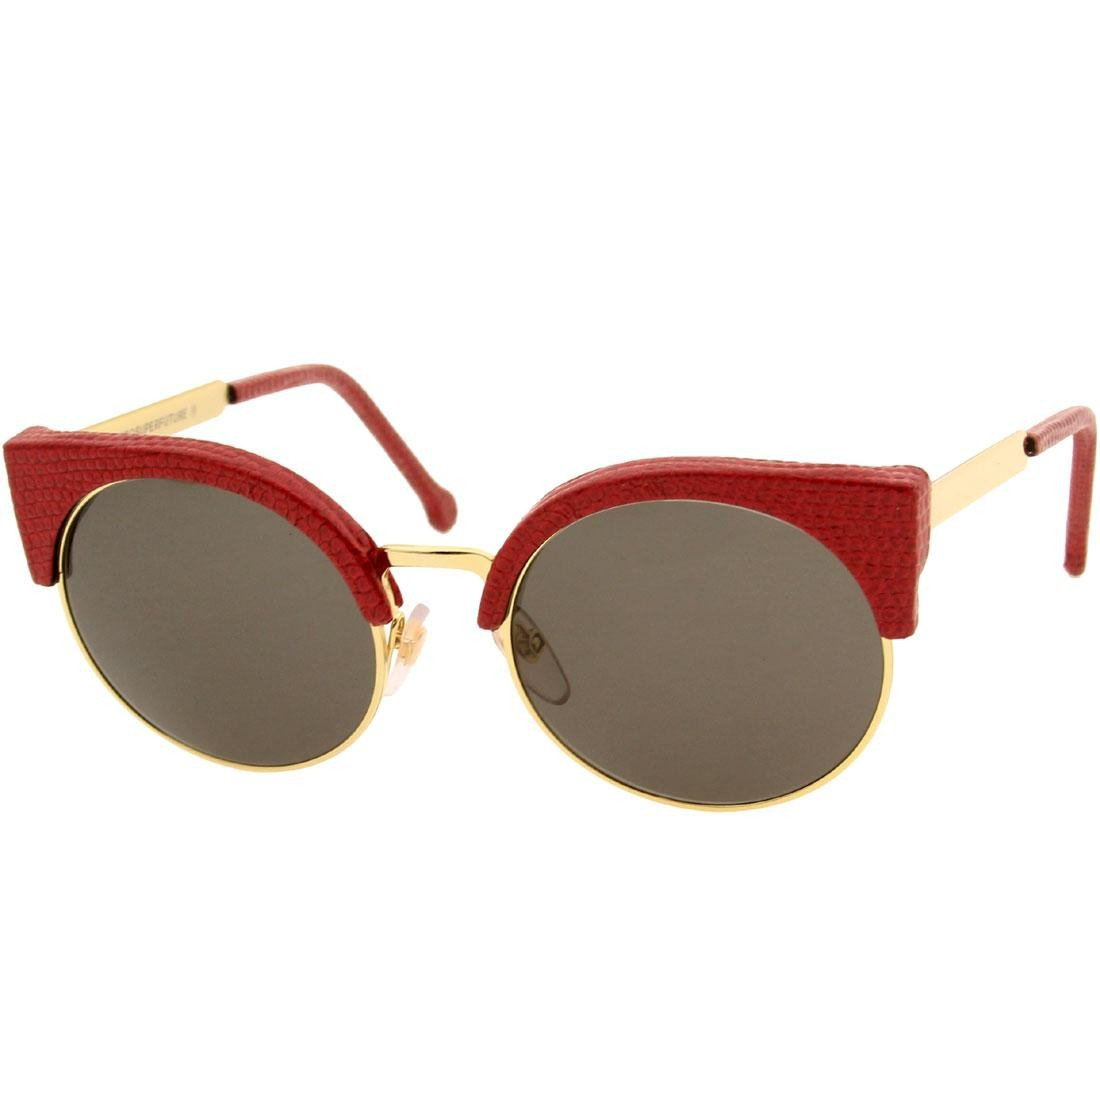 Super Sunglasses Lucia (red / lizard)